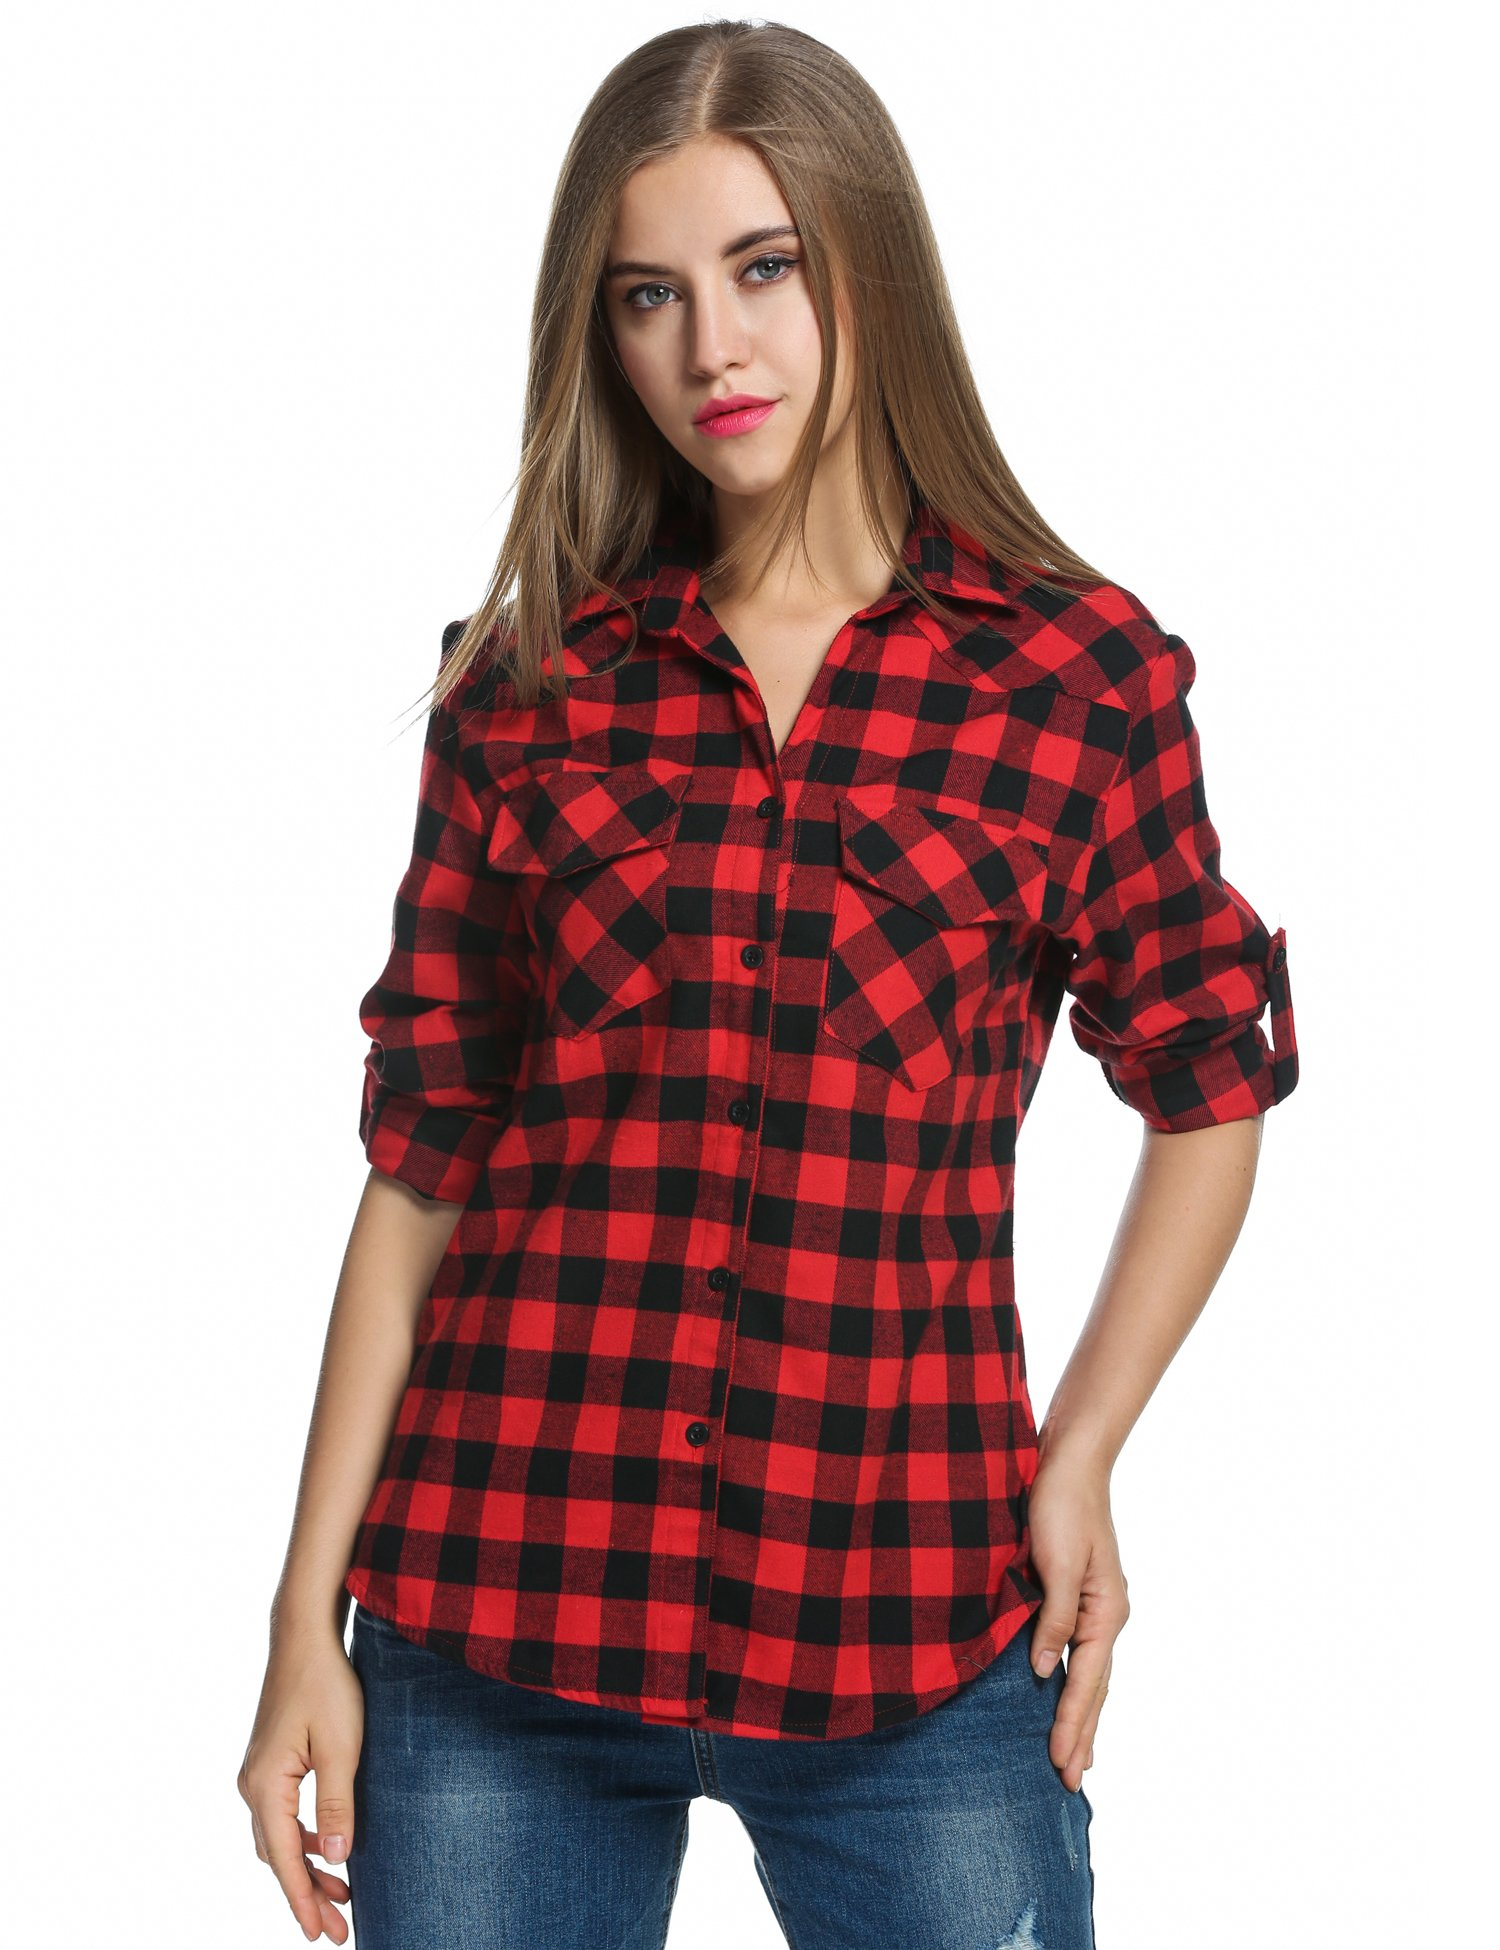 Fashion style Red tartan plaid shirts for women for woman